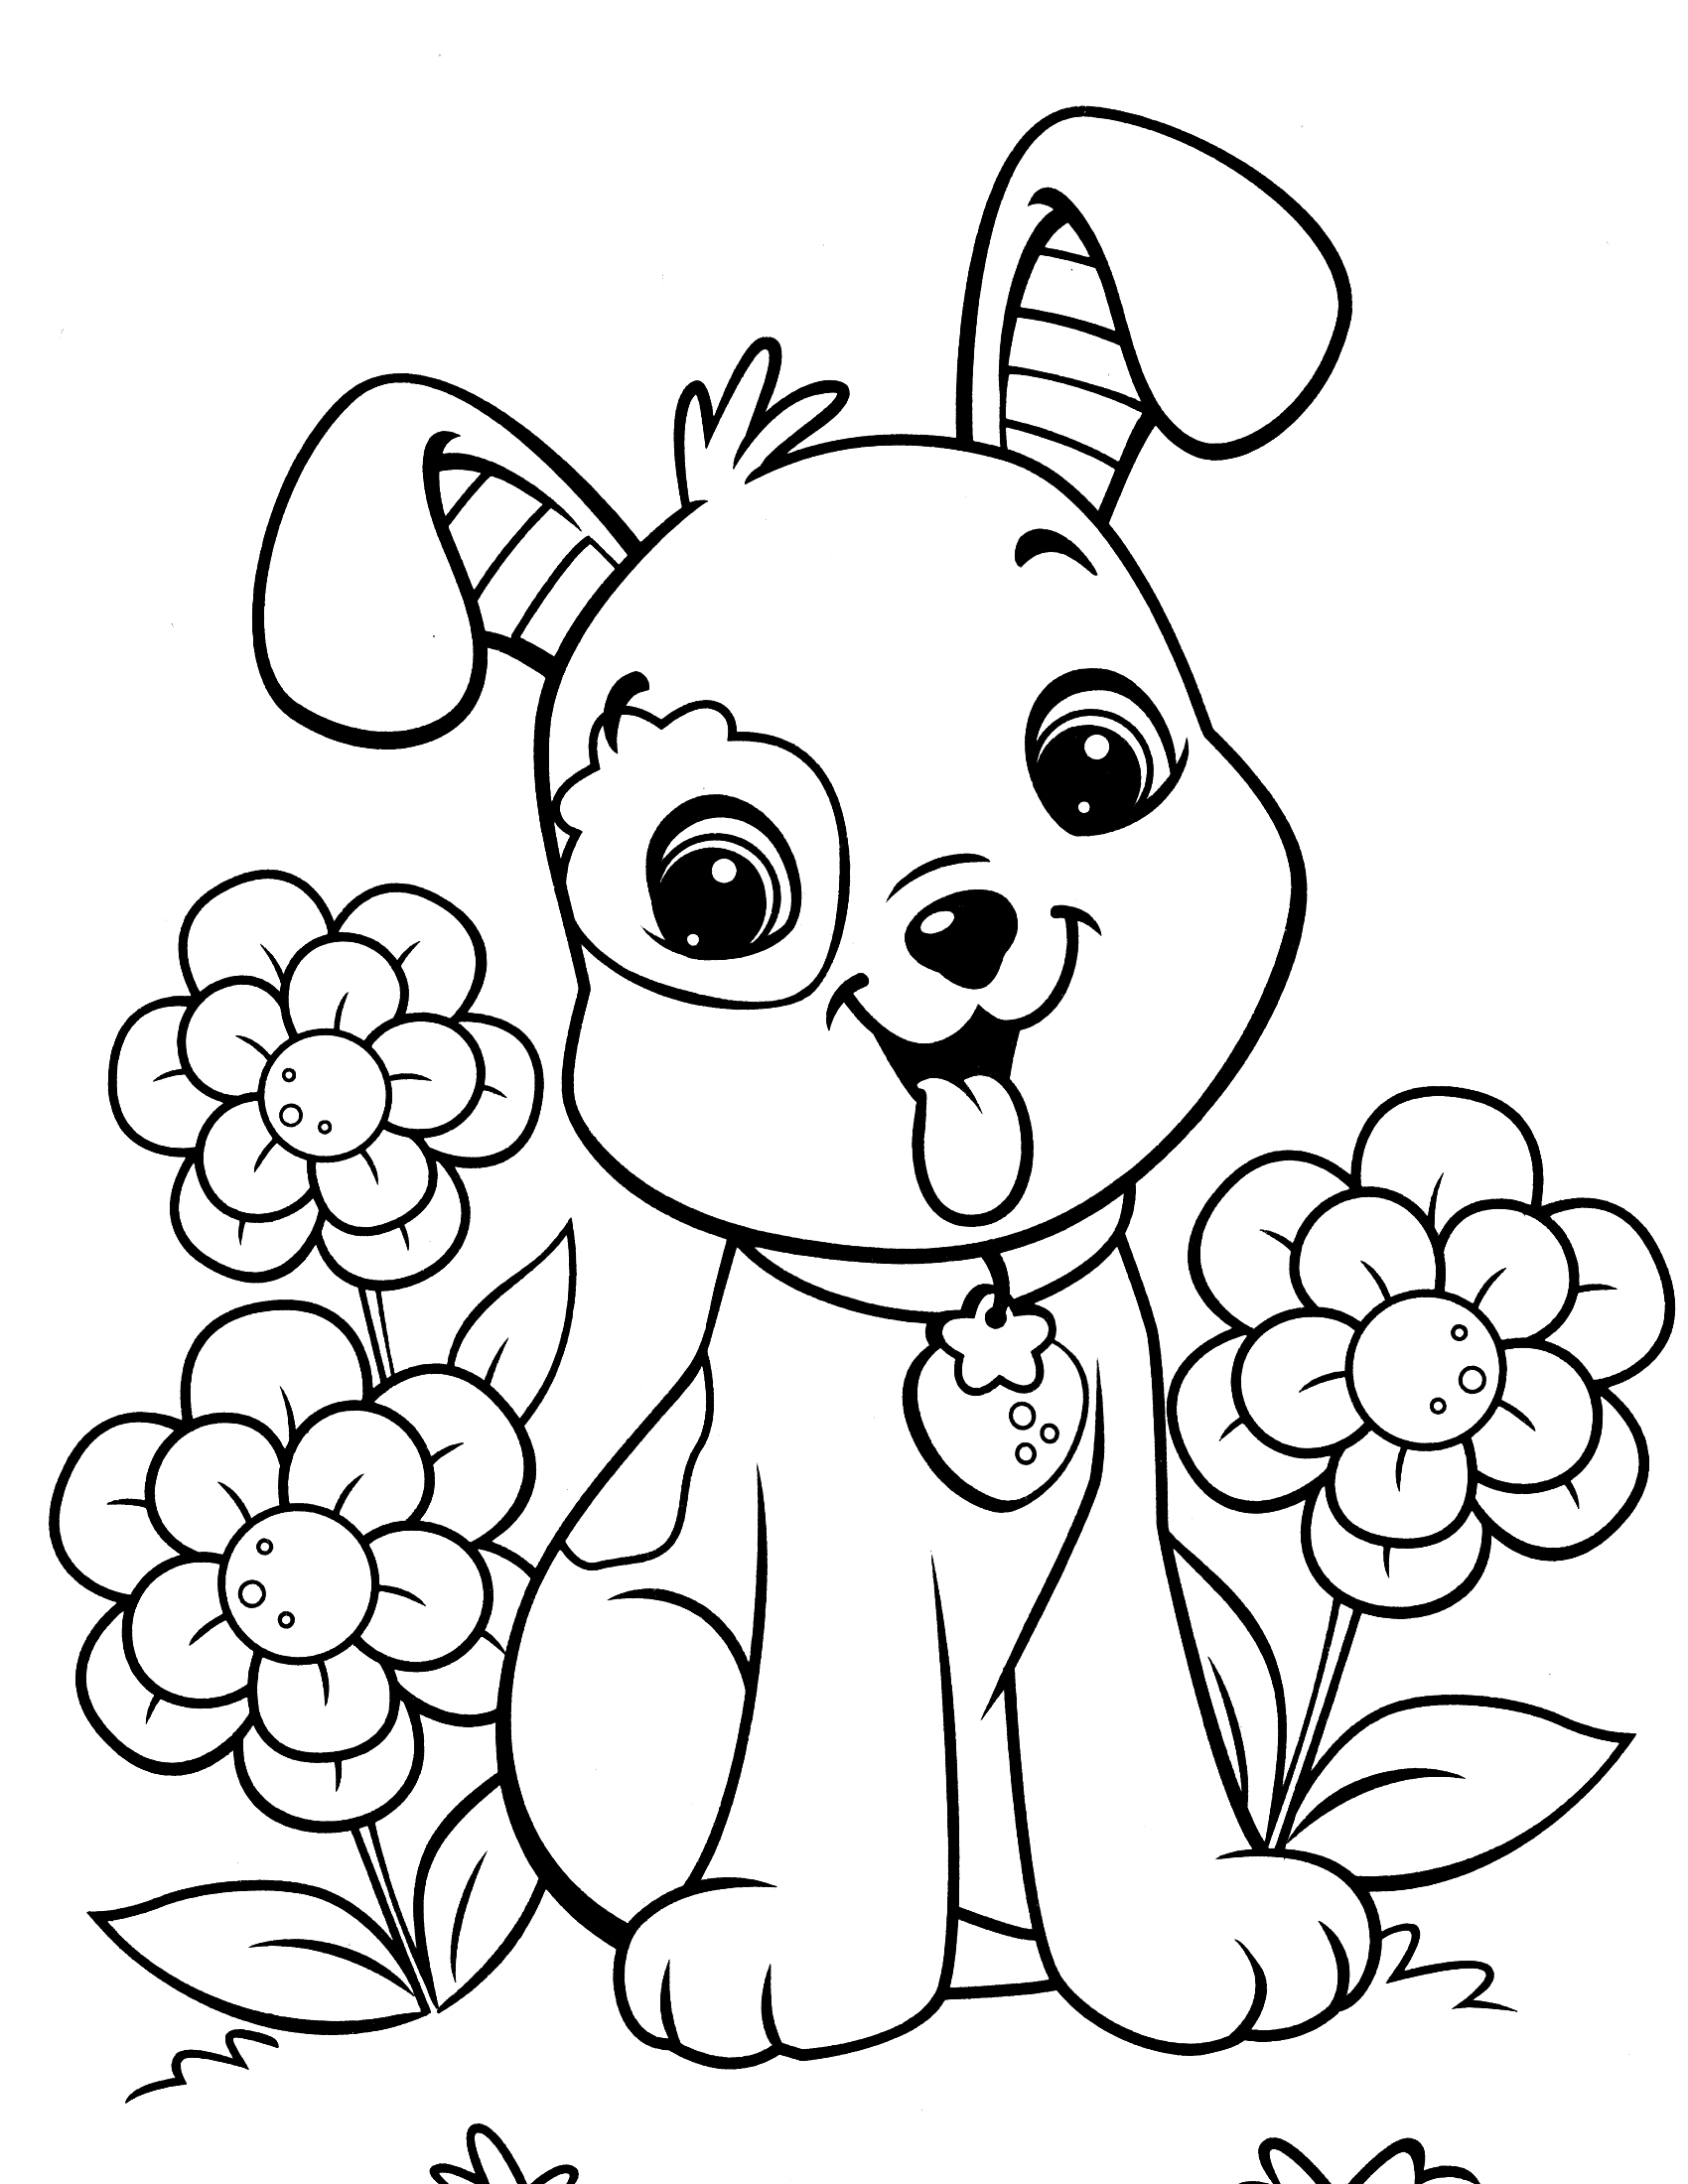 a coloring page of a dog puppy coloring pages best coloring pages for kids a a coloring page of dog